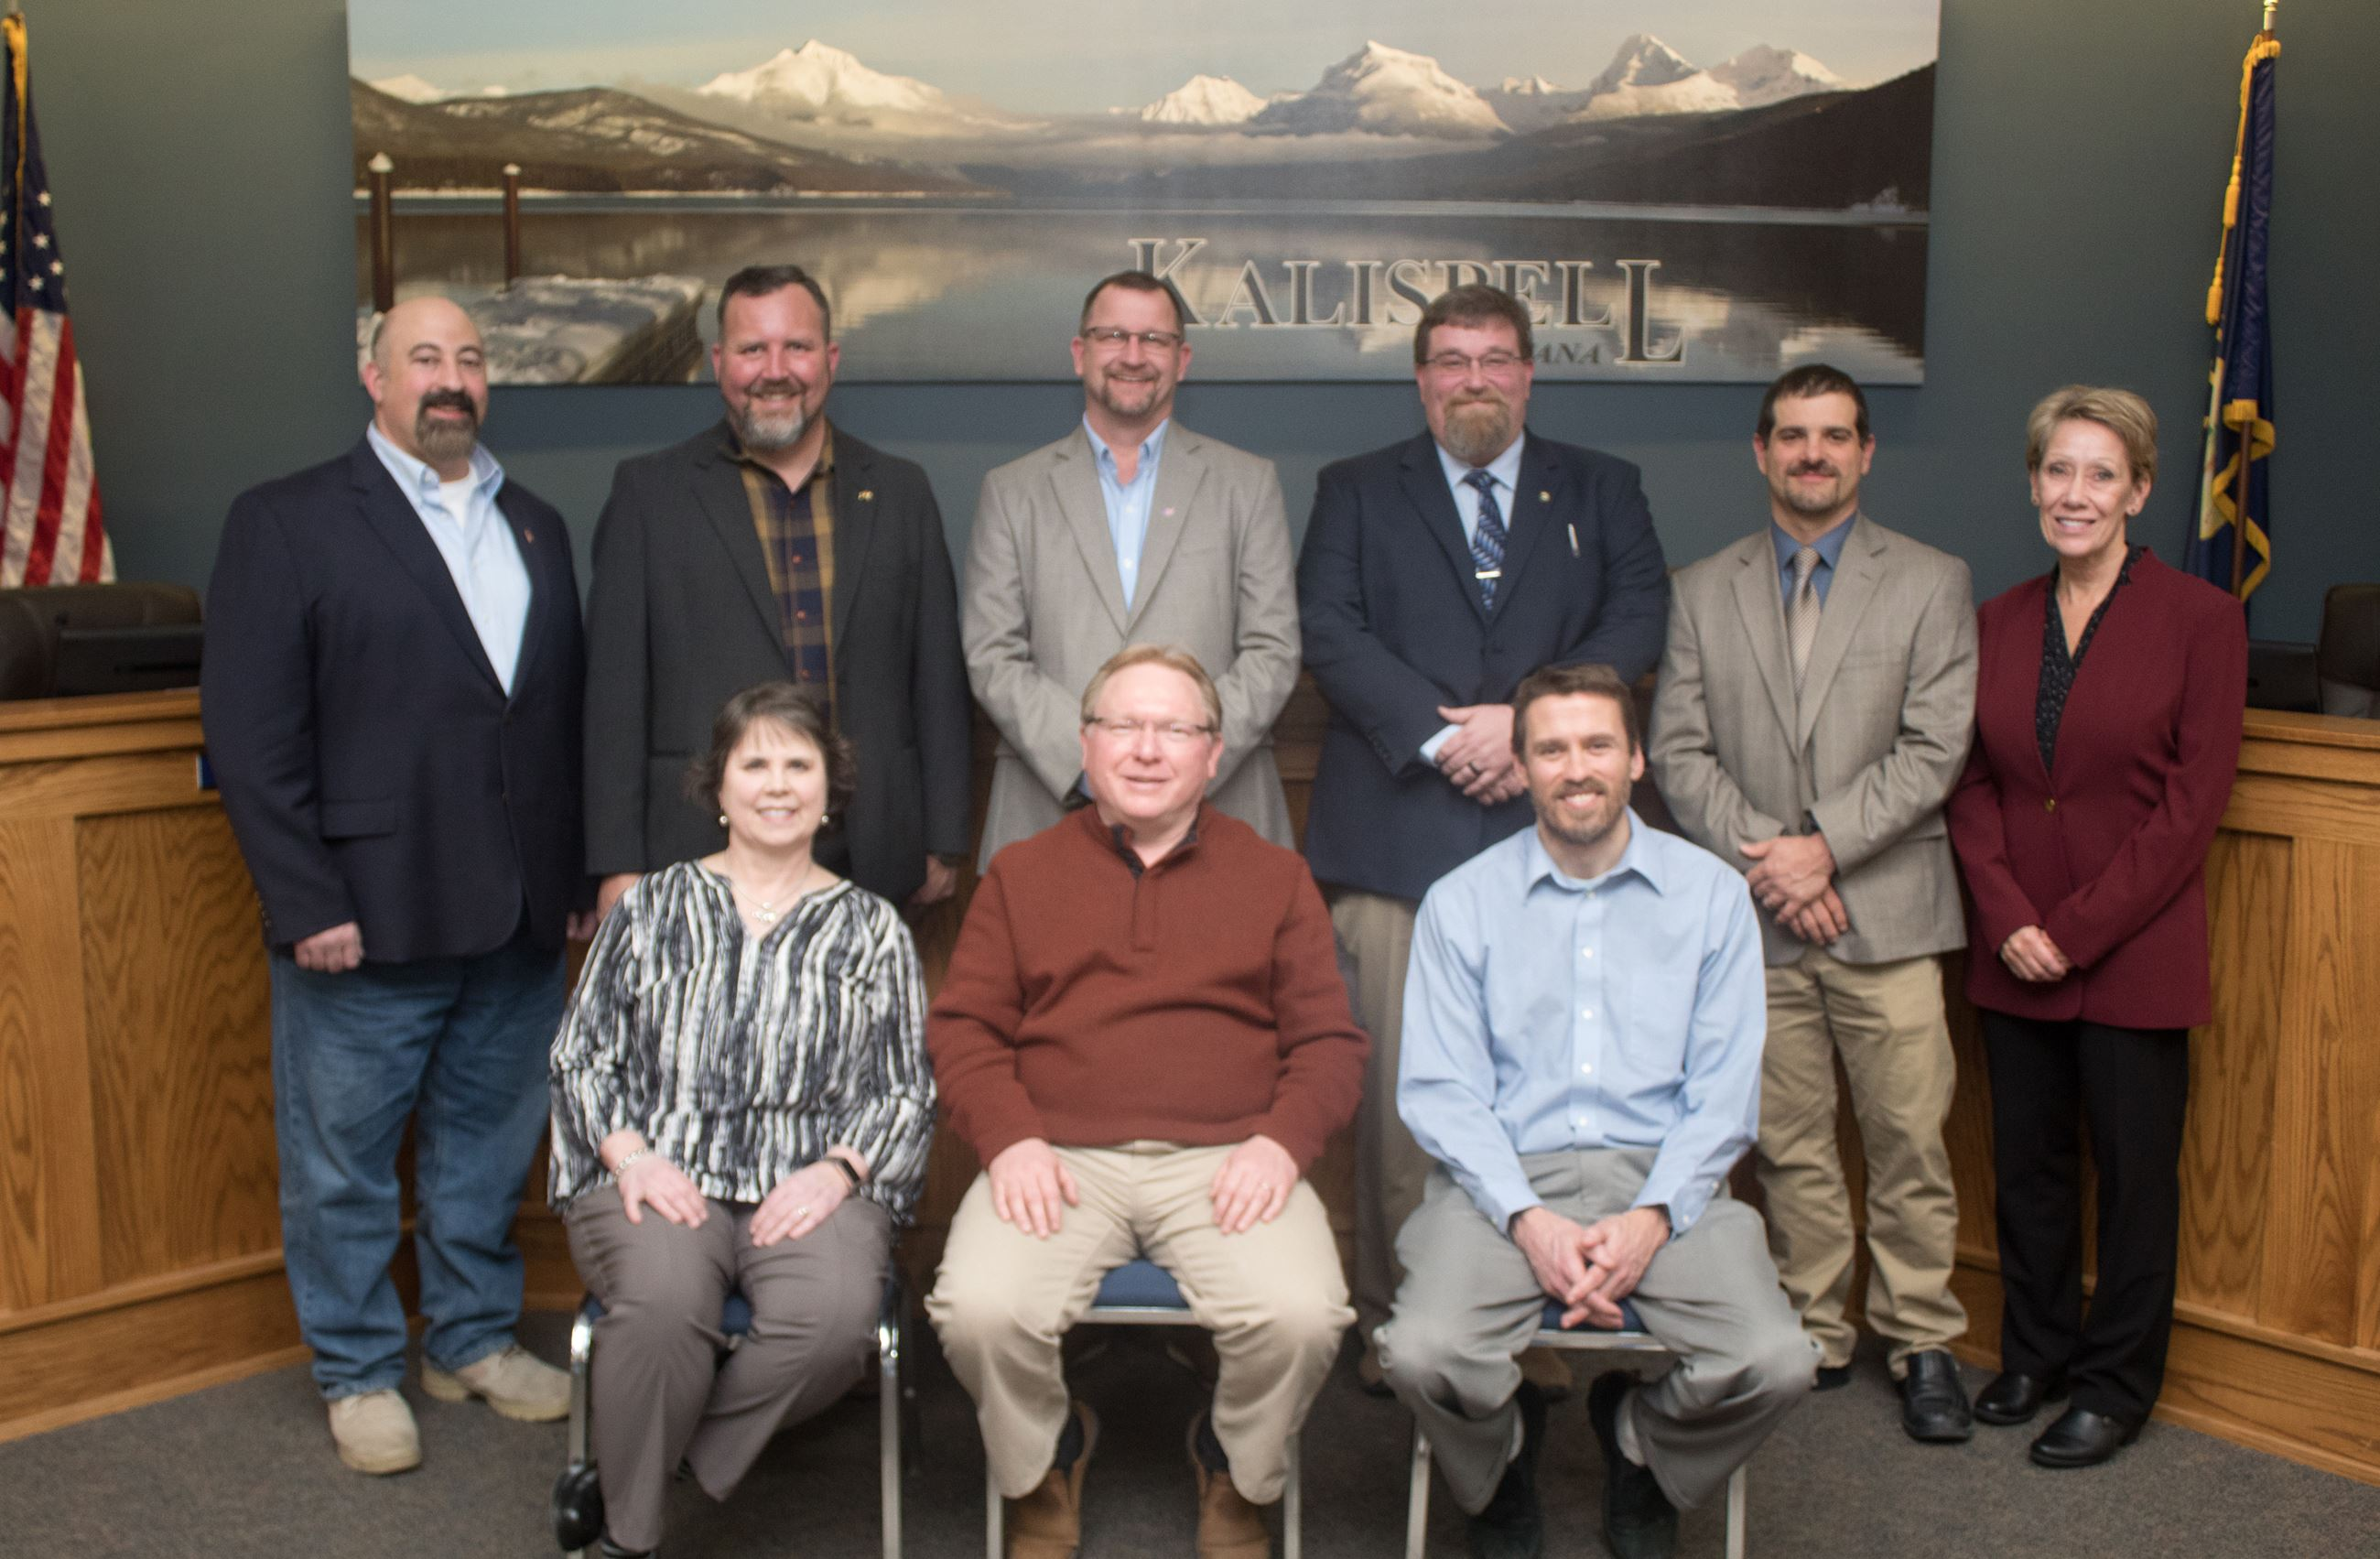 Kalispell City Council 2020